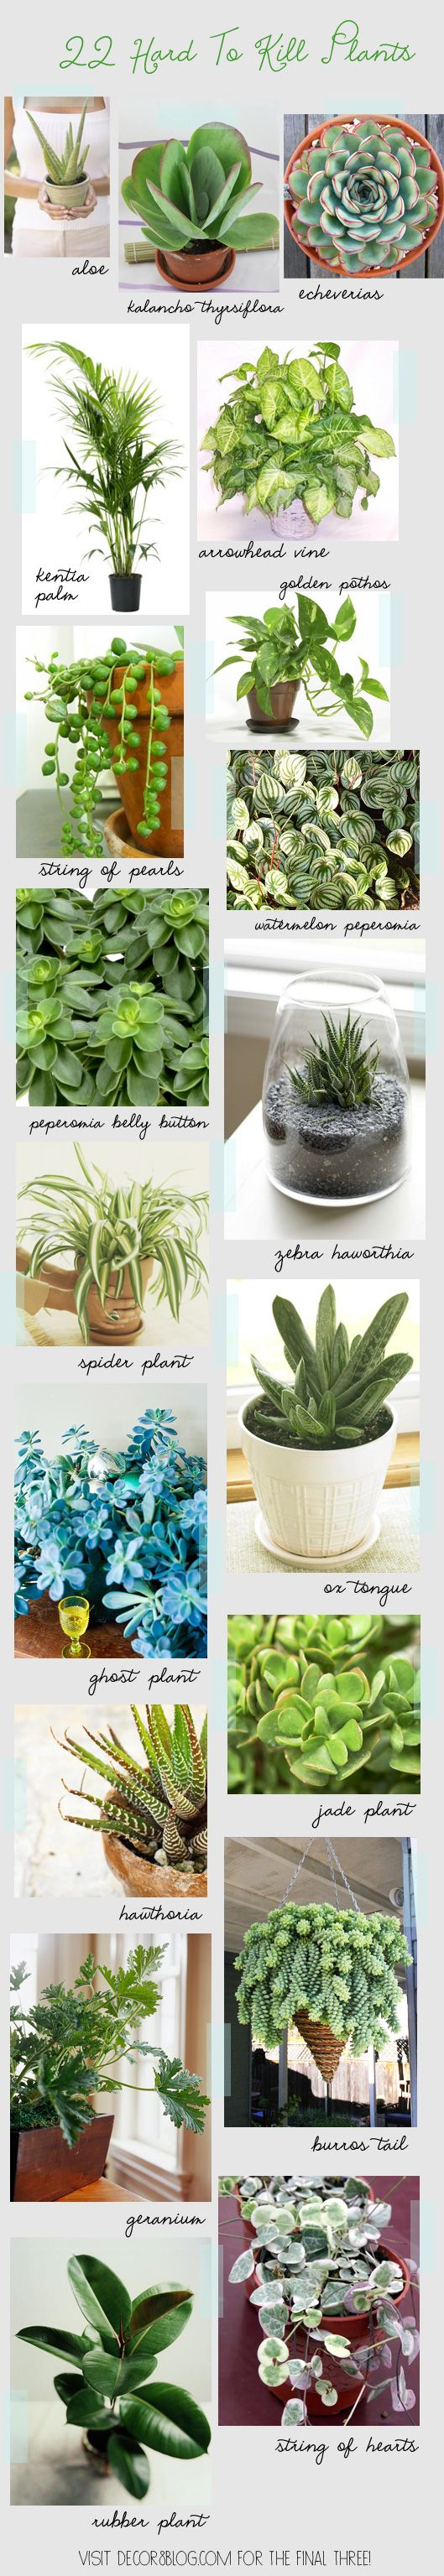 Go from black or brown thumb to